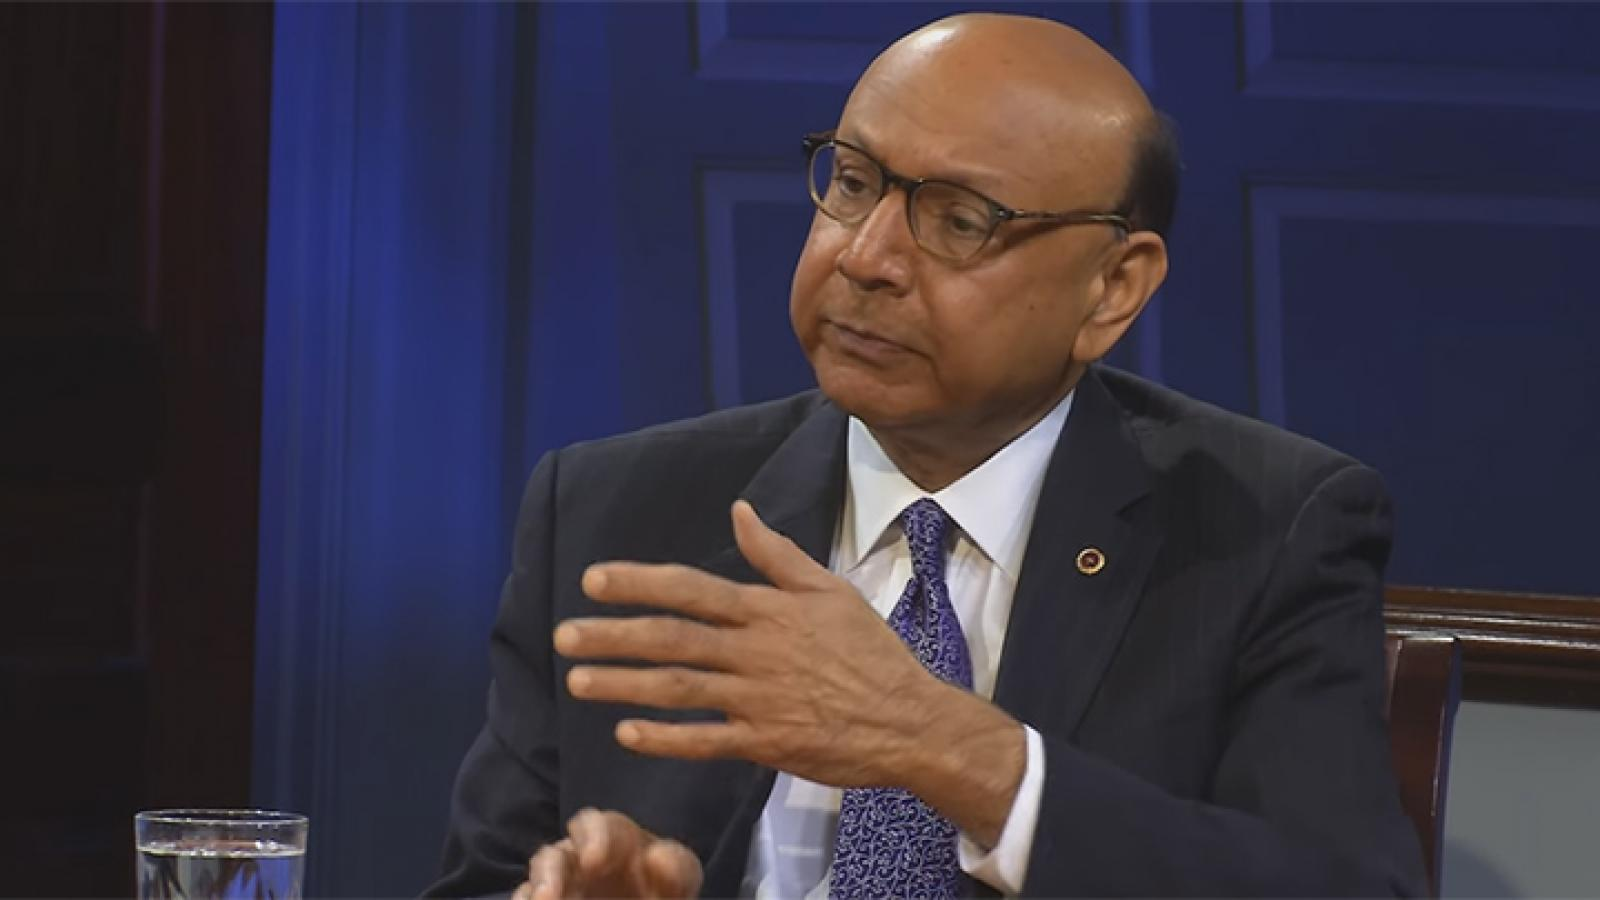 Muslim American Gold Star father Khizr Khan on why he carries a copy of the U.S. Constitution